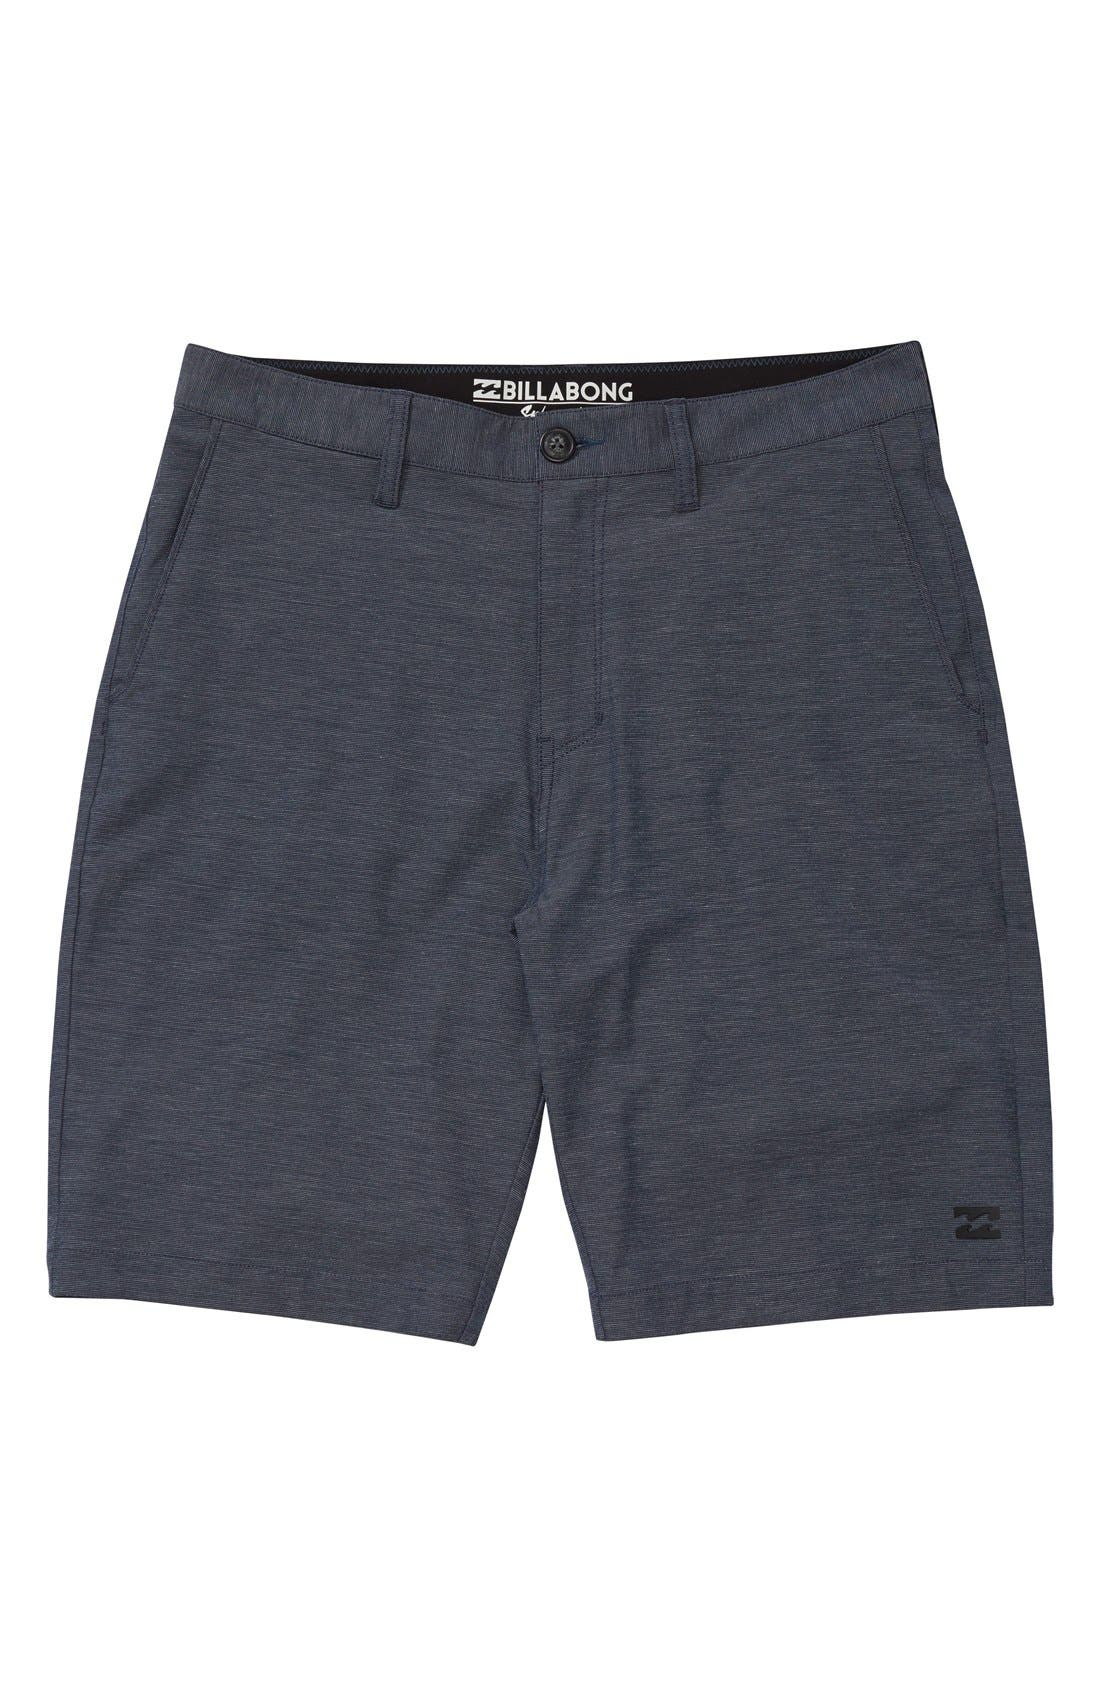 Crossfire X Submersible Hybrid Shorts,                             Main thumbnail 1, color,